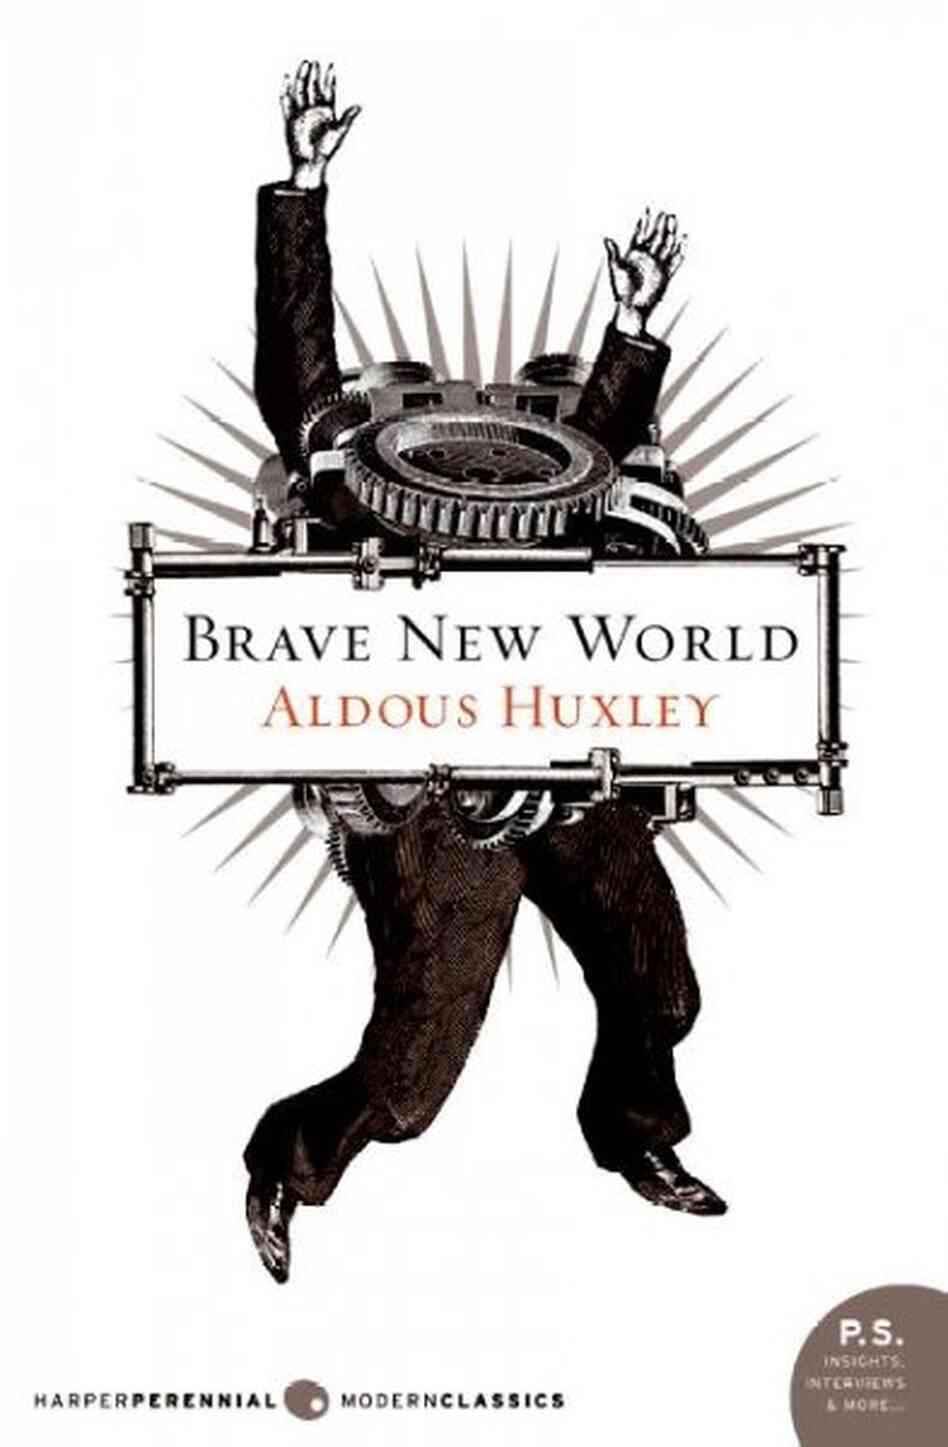 an imperfect world an analysis of brave new world by aldous huxley Ever wondered why brave new world is written like a normal brave new world by aldous huxley home / literature / brave new world / analysis / three act plot.